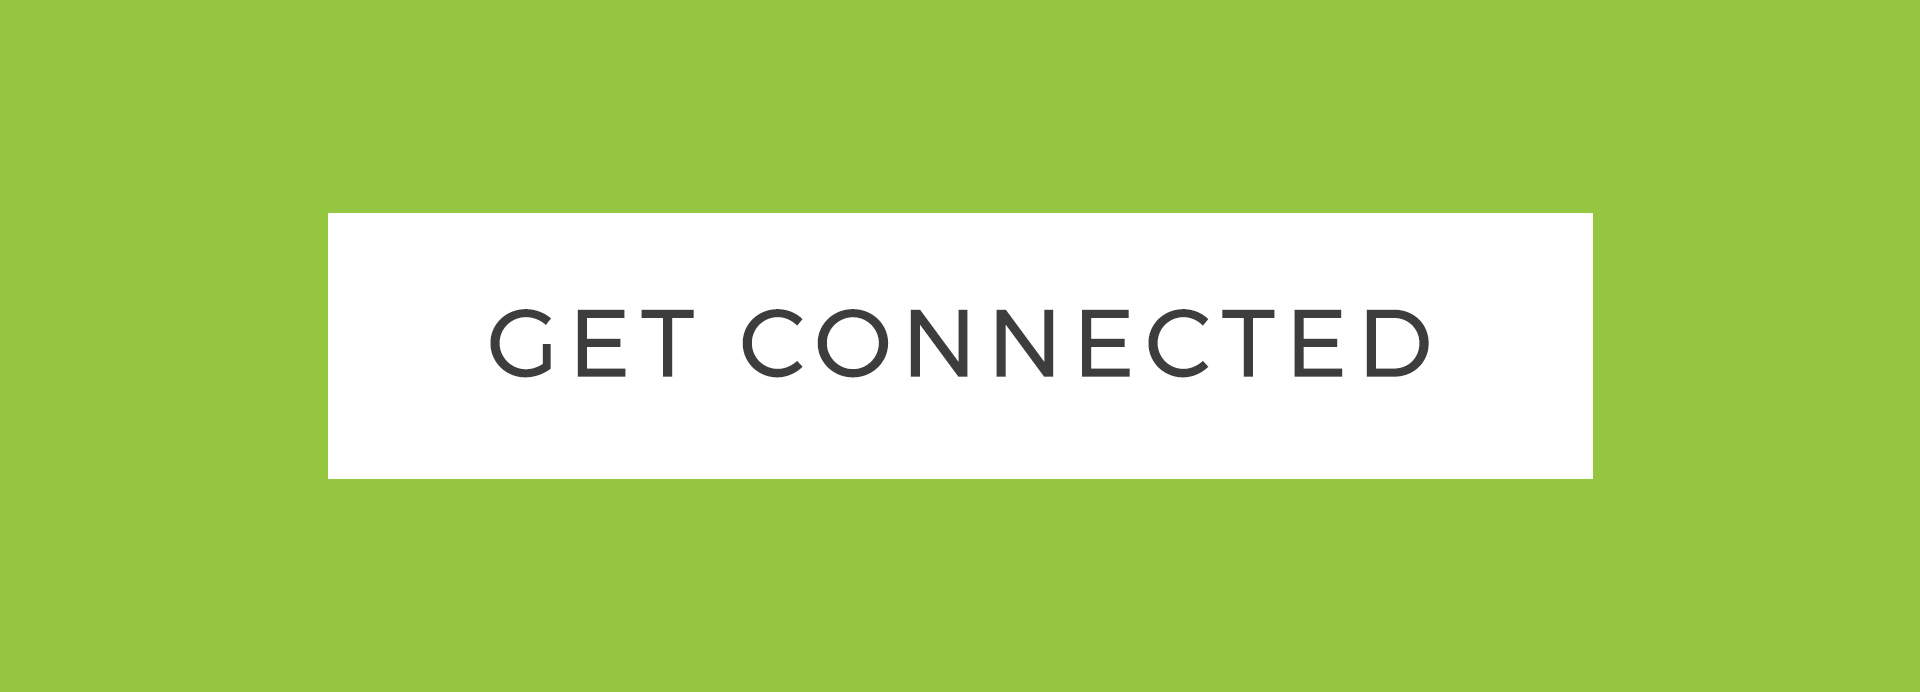 GET CONNECTED BUTTON.jpg